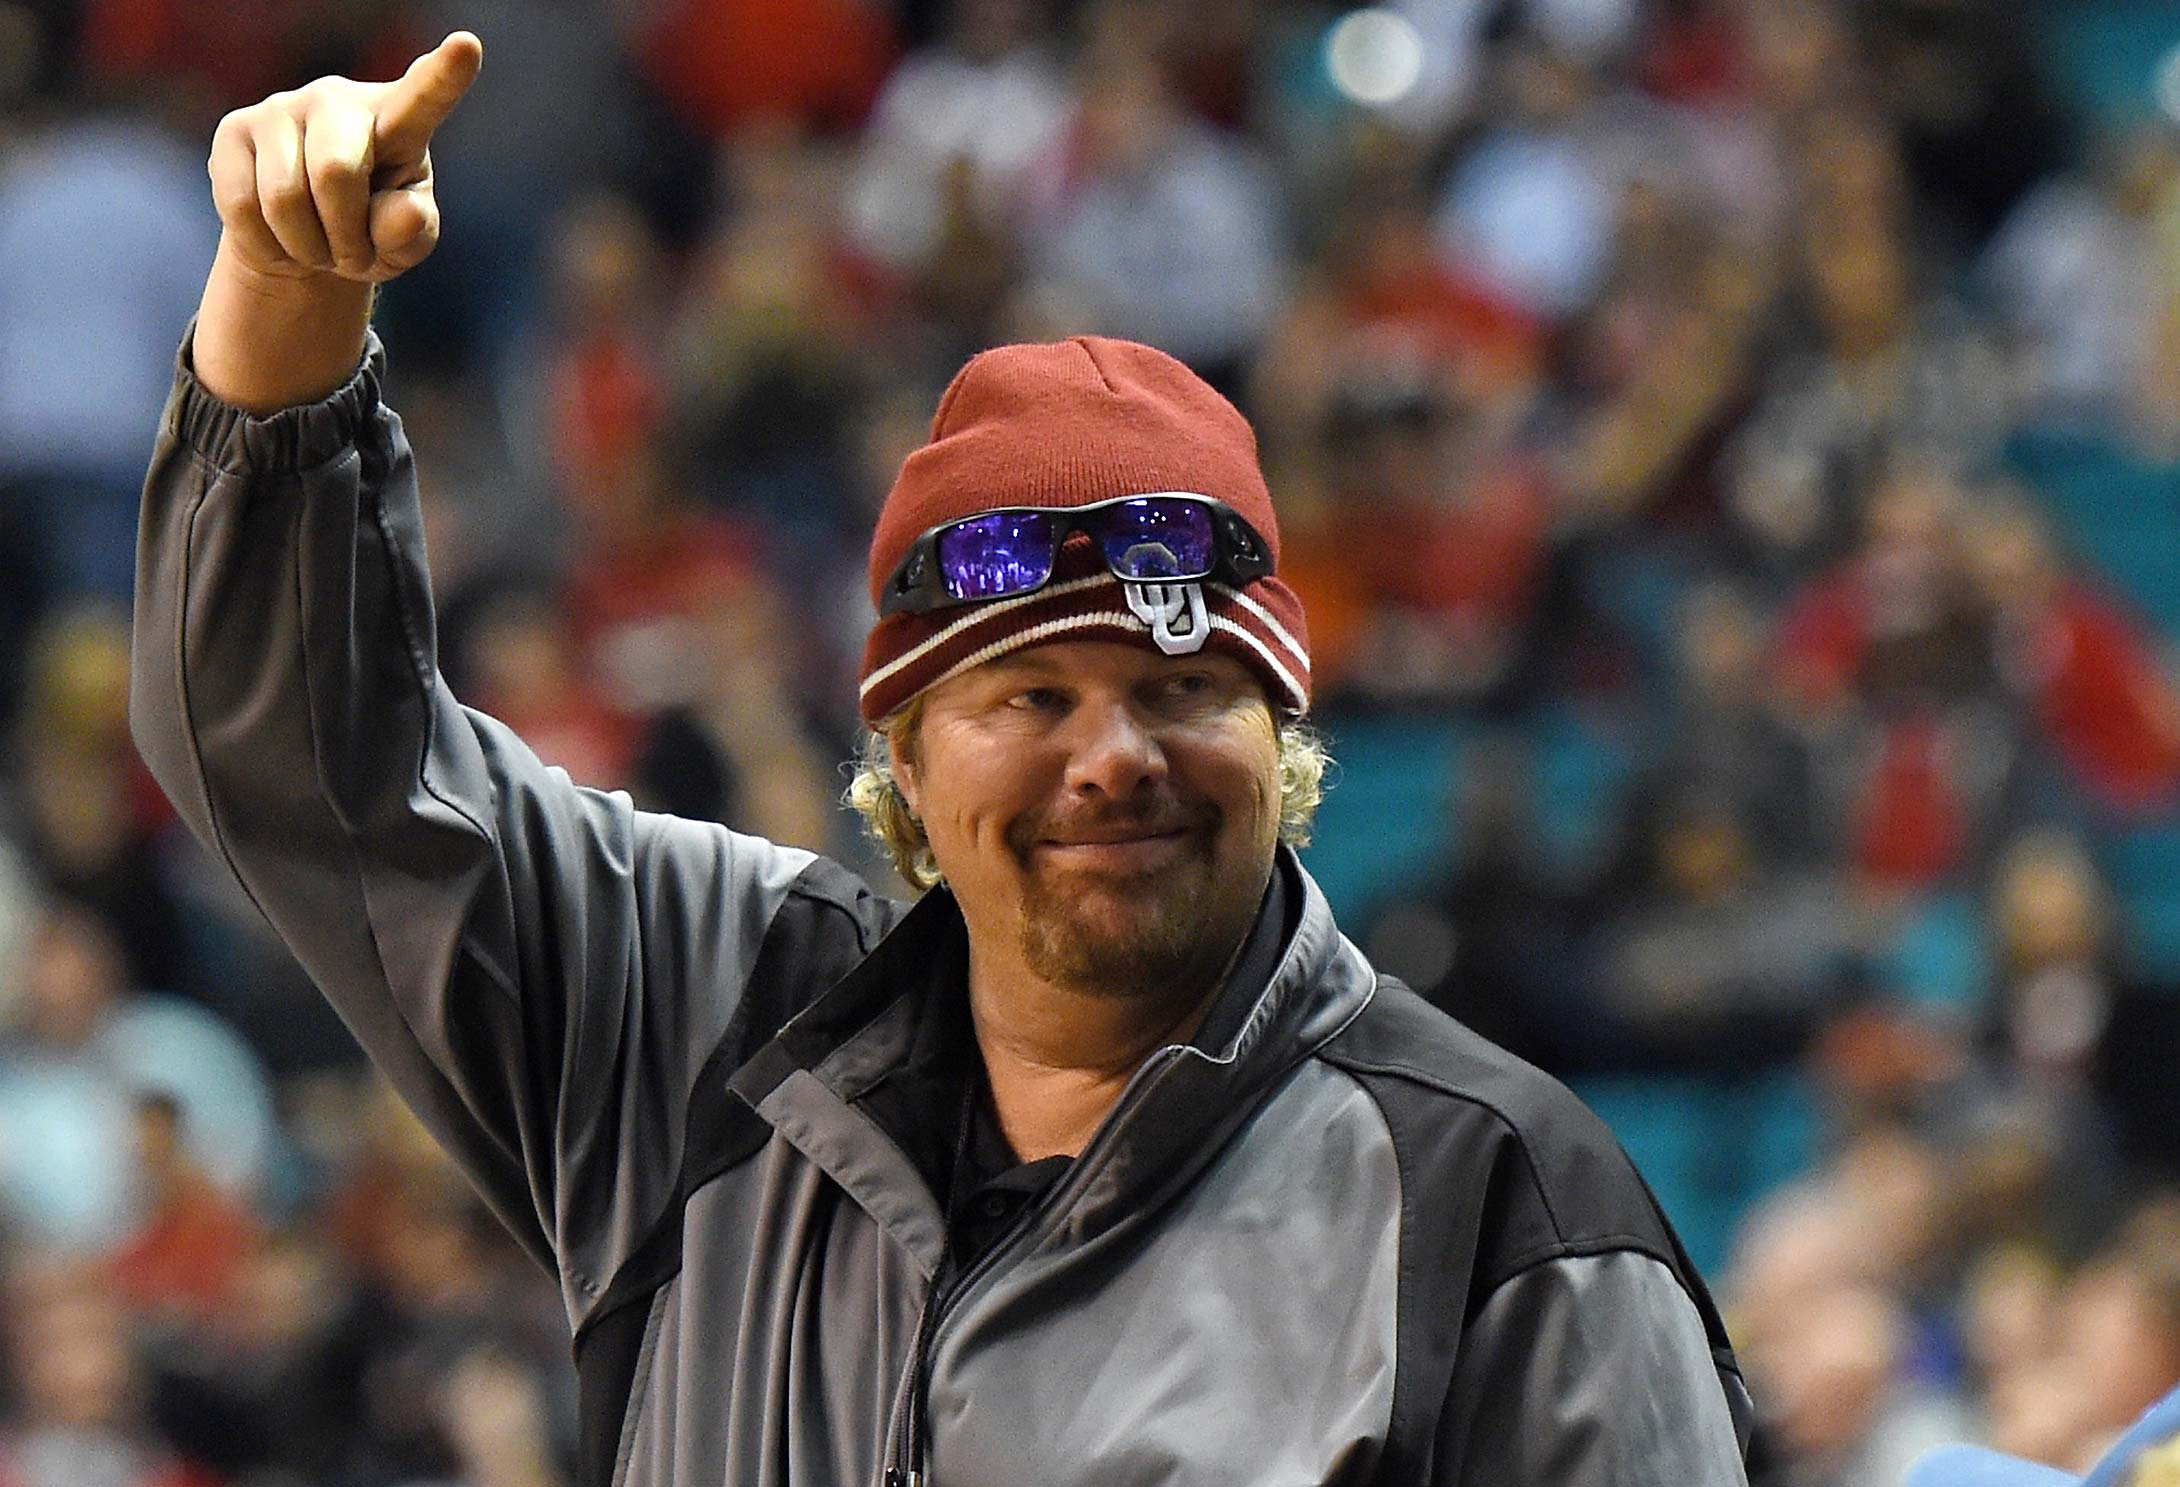 Recording artist Toby Keith acknowledges fans as he attends the 2014 game between the Oklahoma Sooners and the Washington Huskies at the MGM Grand Garden Arena in Las Vegas.